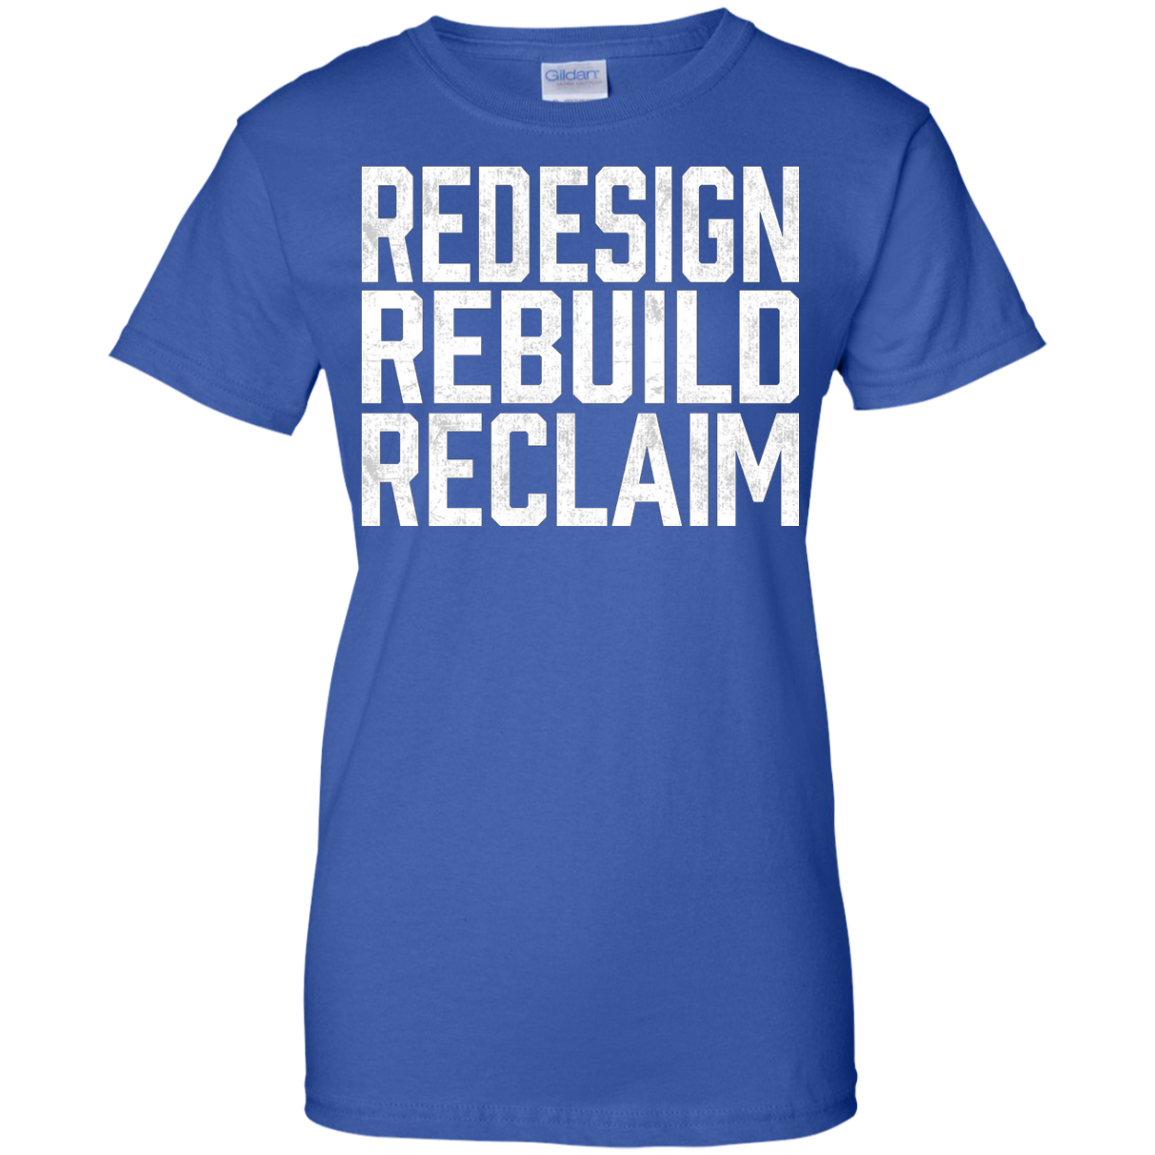 Redesign, Rebuild, Reclaim T-Shirt Rollins Recovery Returns